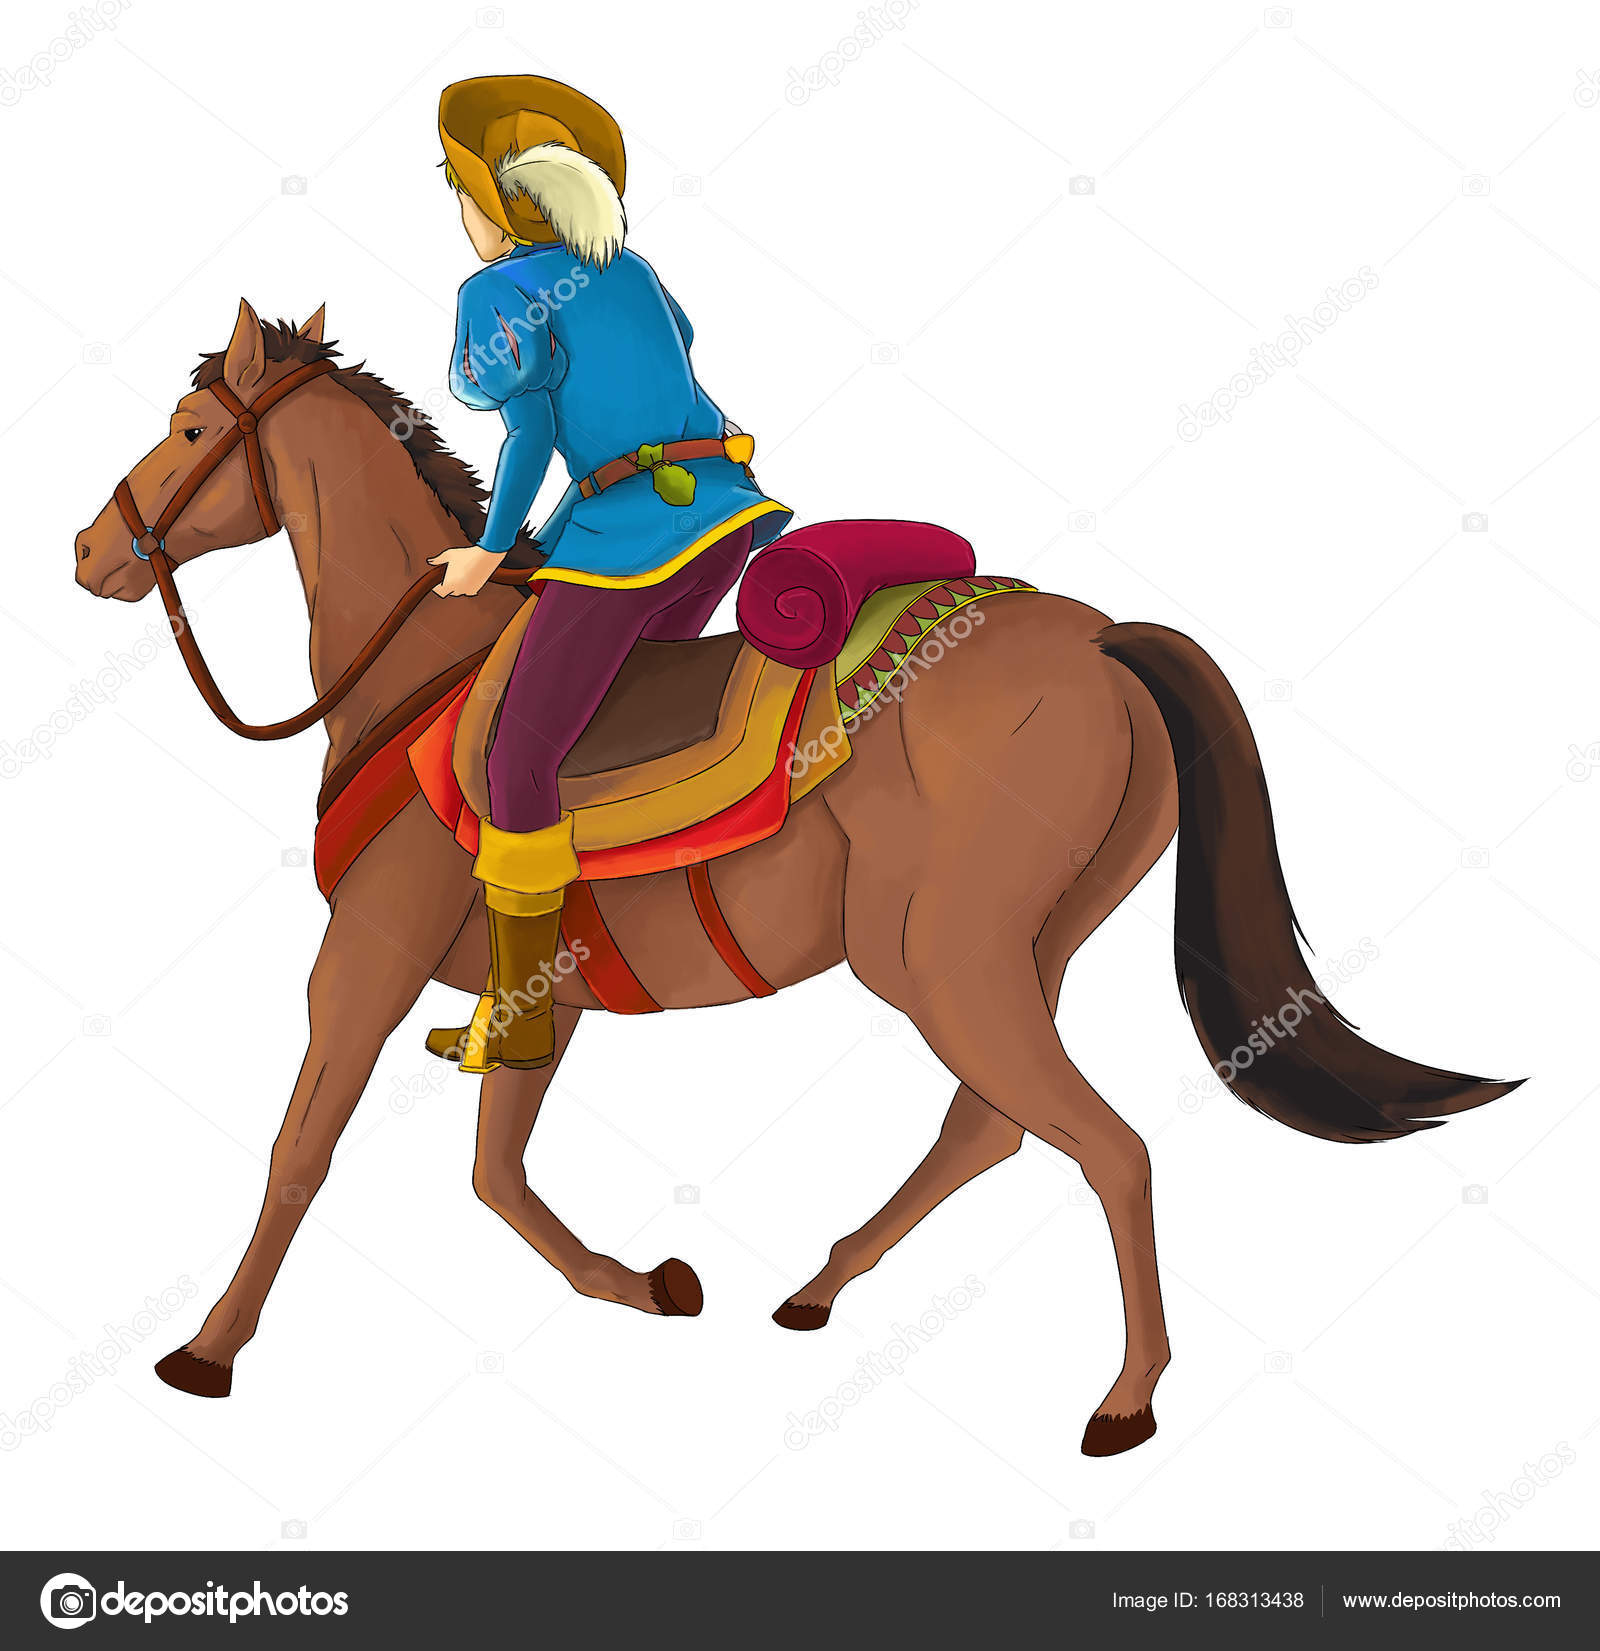 Cartoon Medieval Nobleman Horse Illustration Children Stock Photo C Illustrator Hft 168313438